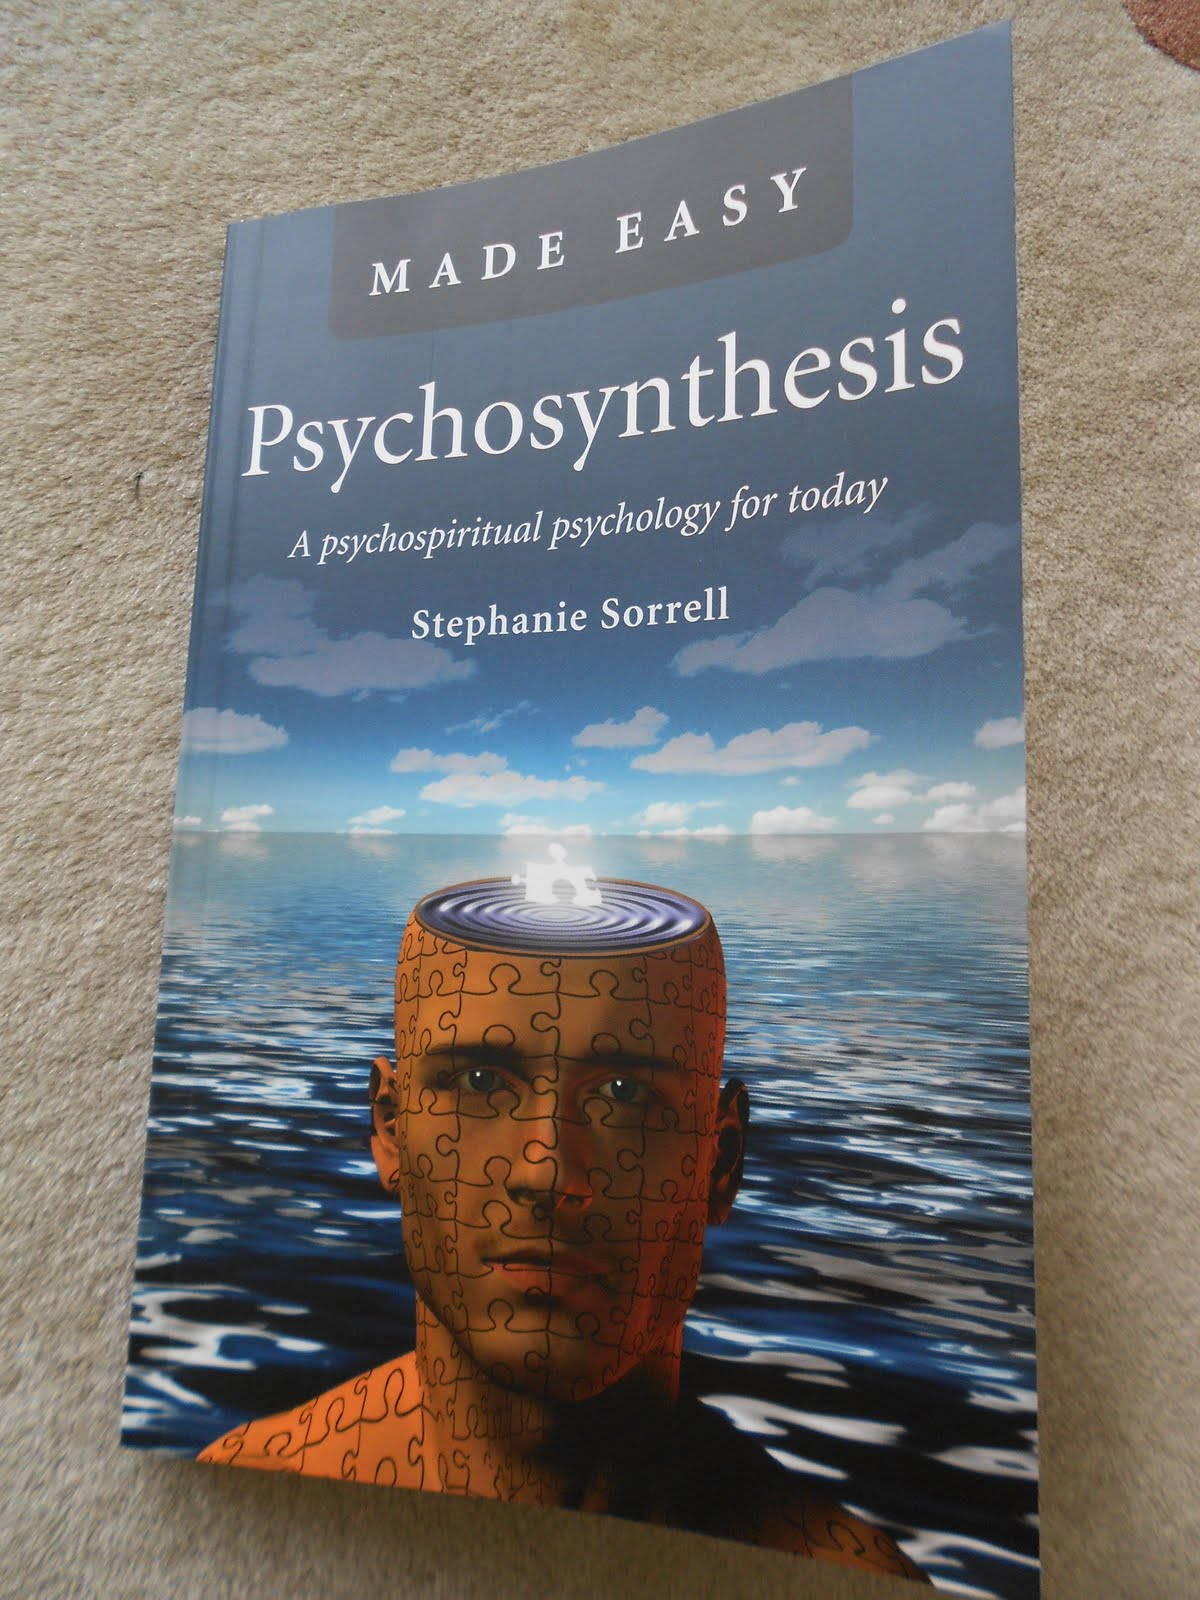 books on psychosynthesis Amazonin - buy psychosynthesis book online at best prices in india on amazonin read psychosynthesis book reviews & author details and more at amazonin free.